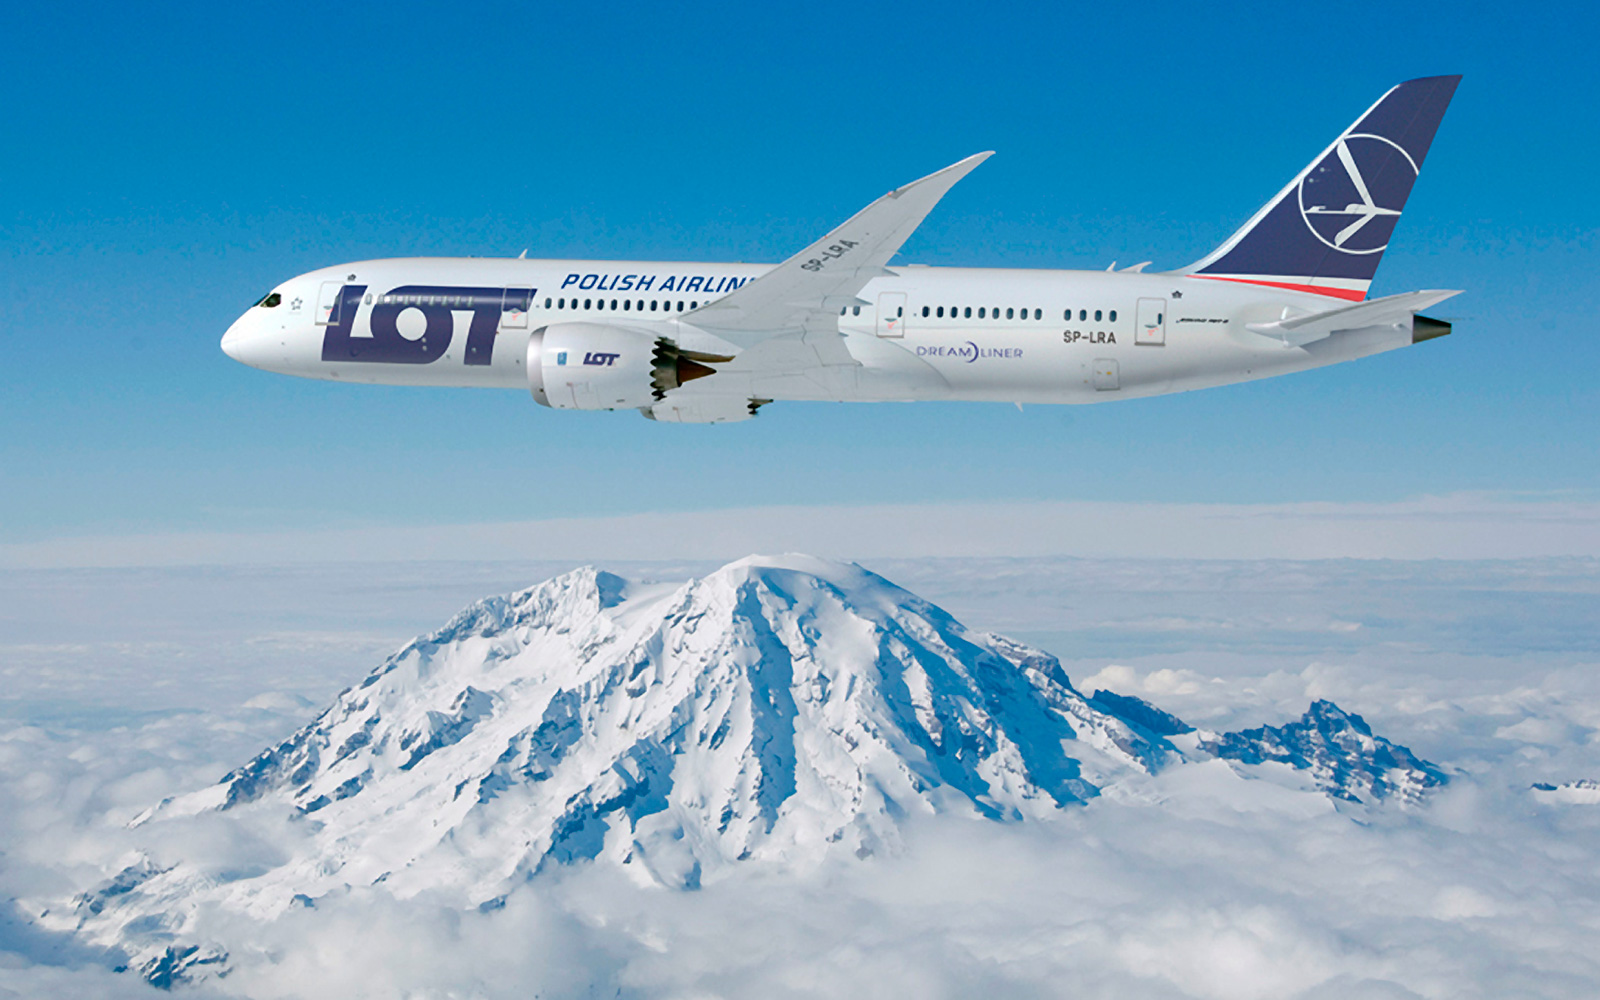 11. LOT Polish Airlines